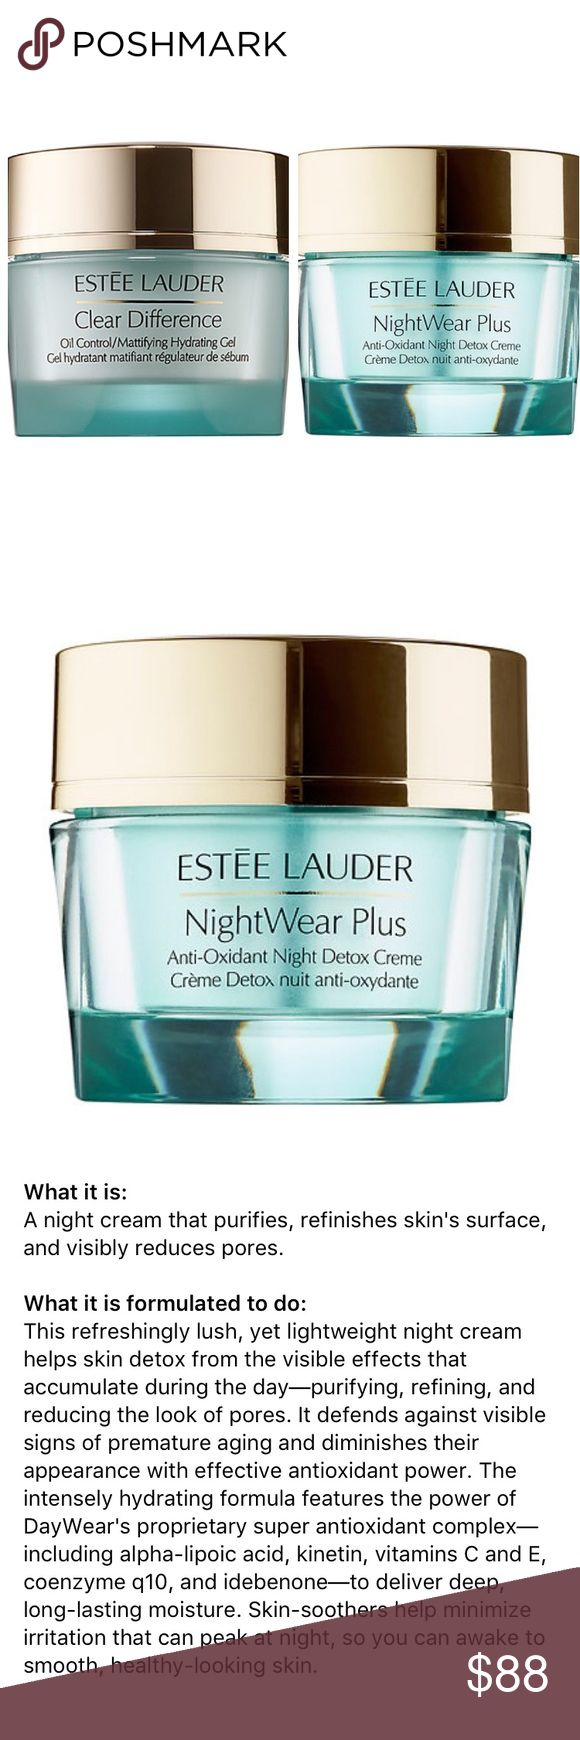 Estee lauder: clear difference and nightwear plus Estee lauder: clear difference oil control/mattifying hydrating gel bundled with nightwear plus antioxidant night detox creme Estee Lauder Makeup Face Primer